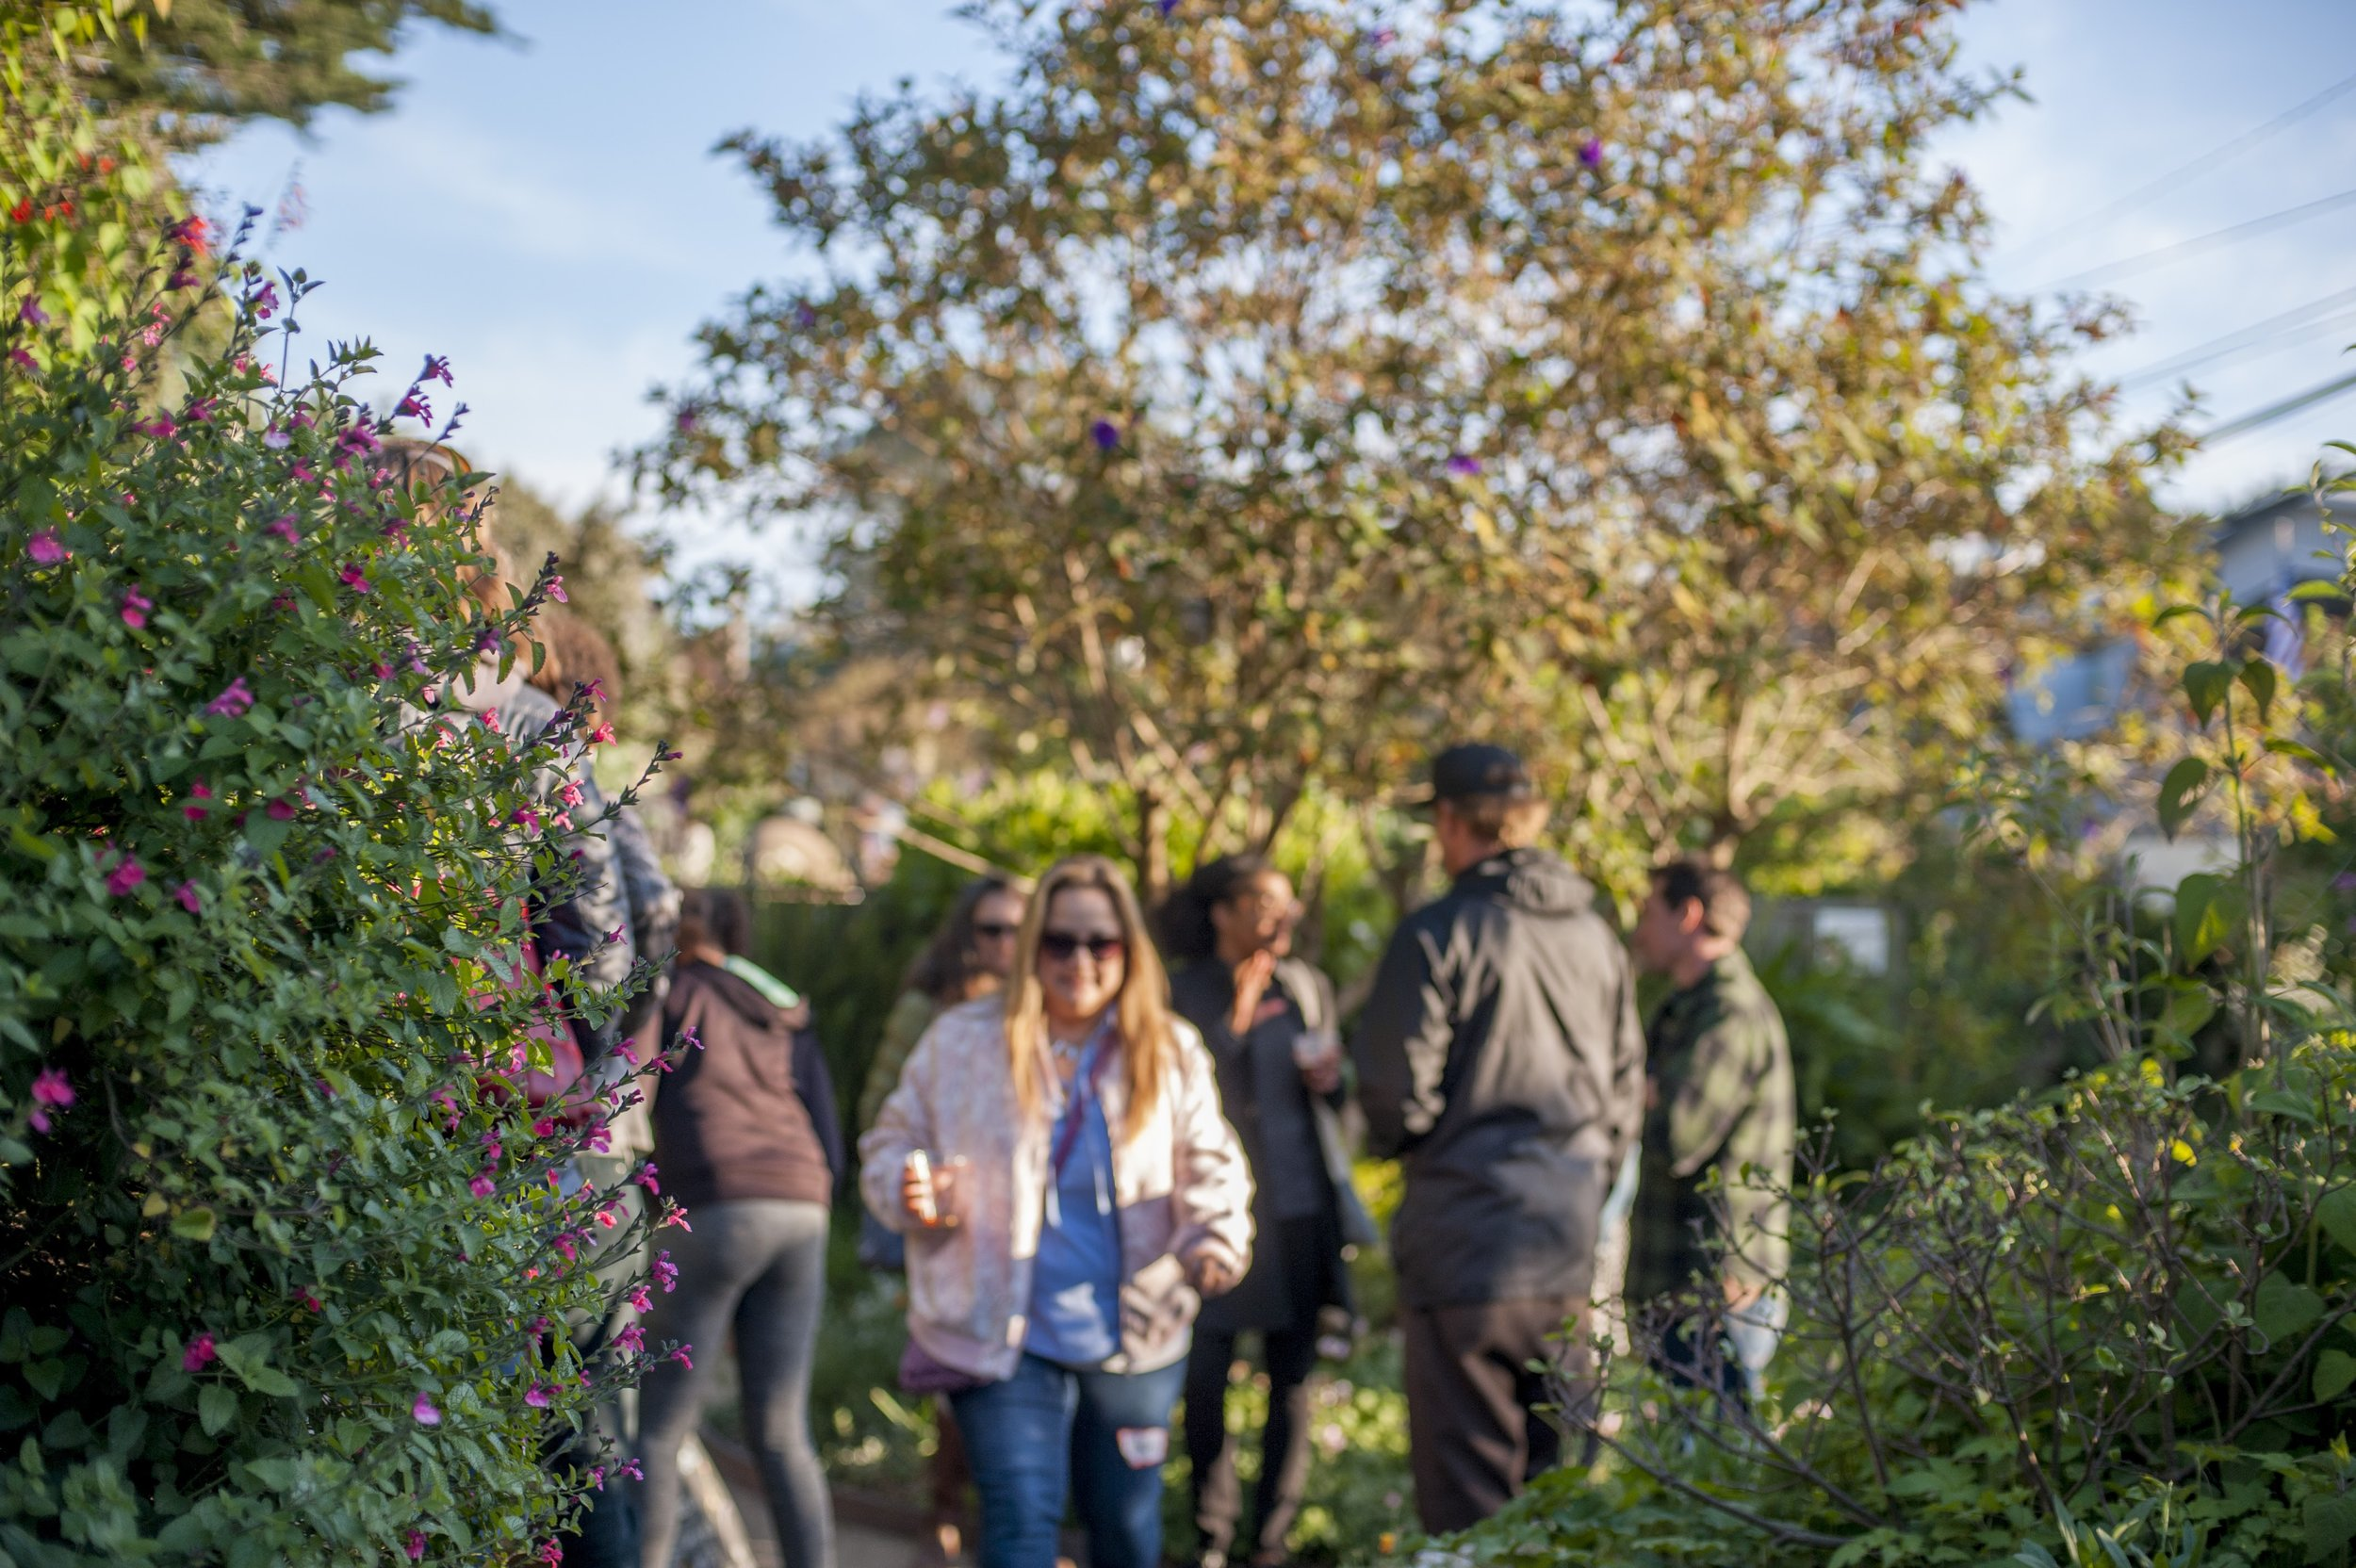 People enjoying the natural beauty of the garden.